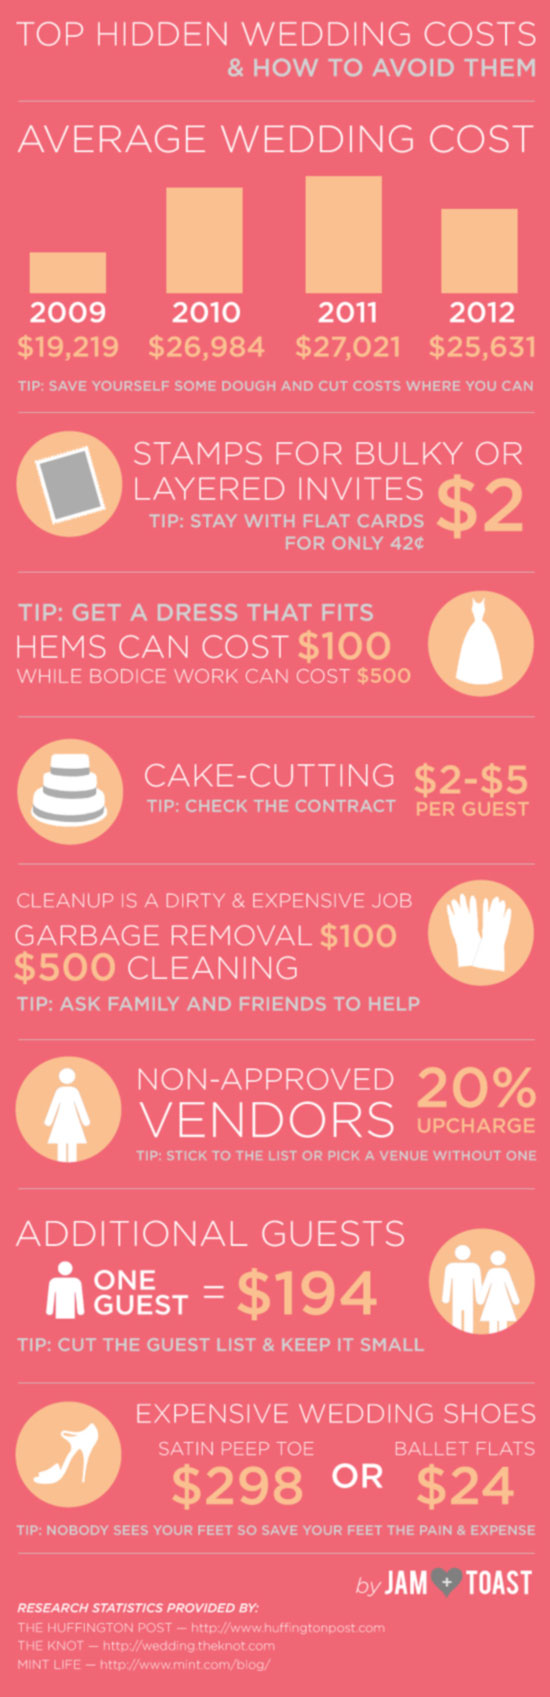 hidden wedding costs infographic